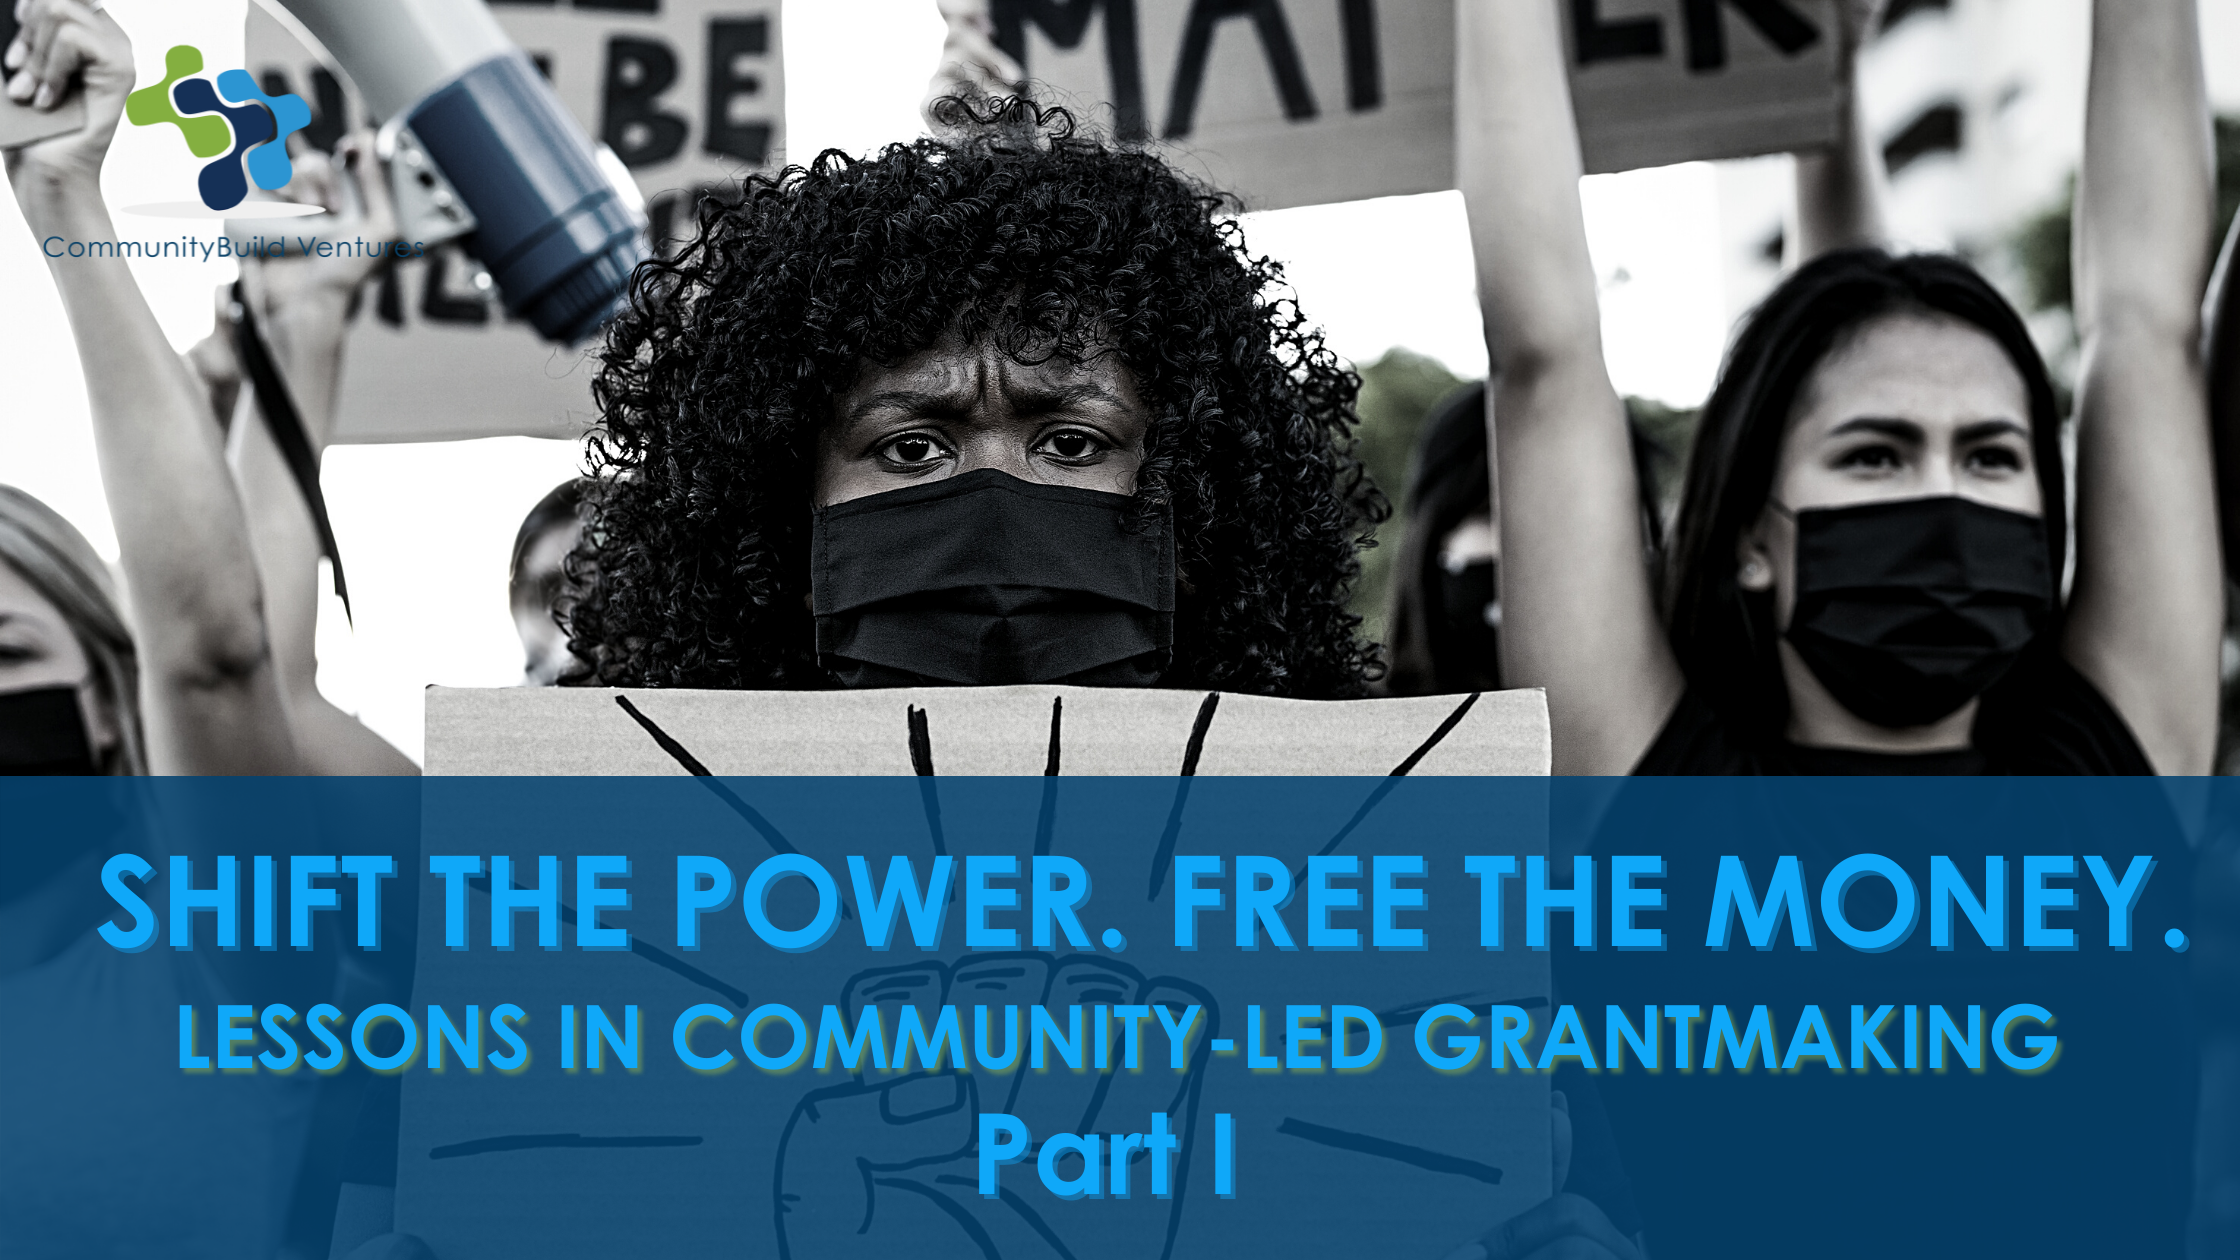 Shift the Power. Free the Money. Lessons in Community-led Grantmaking